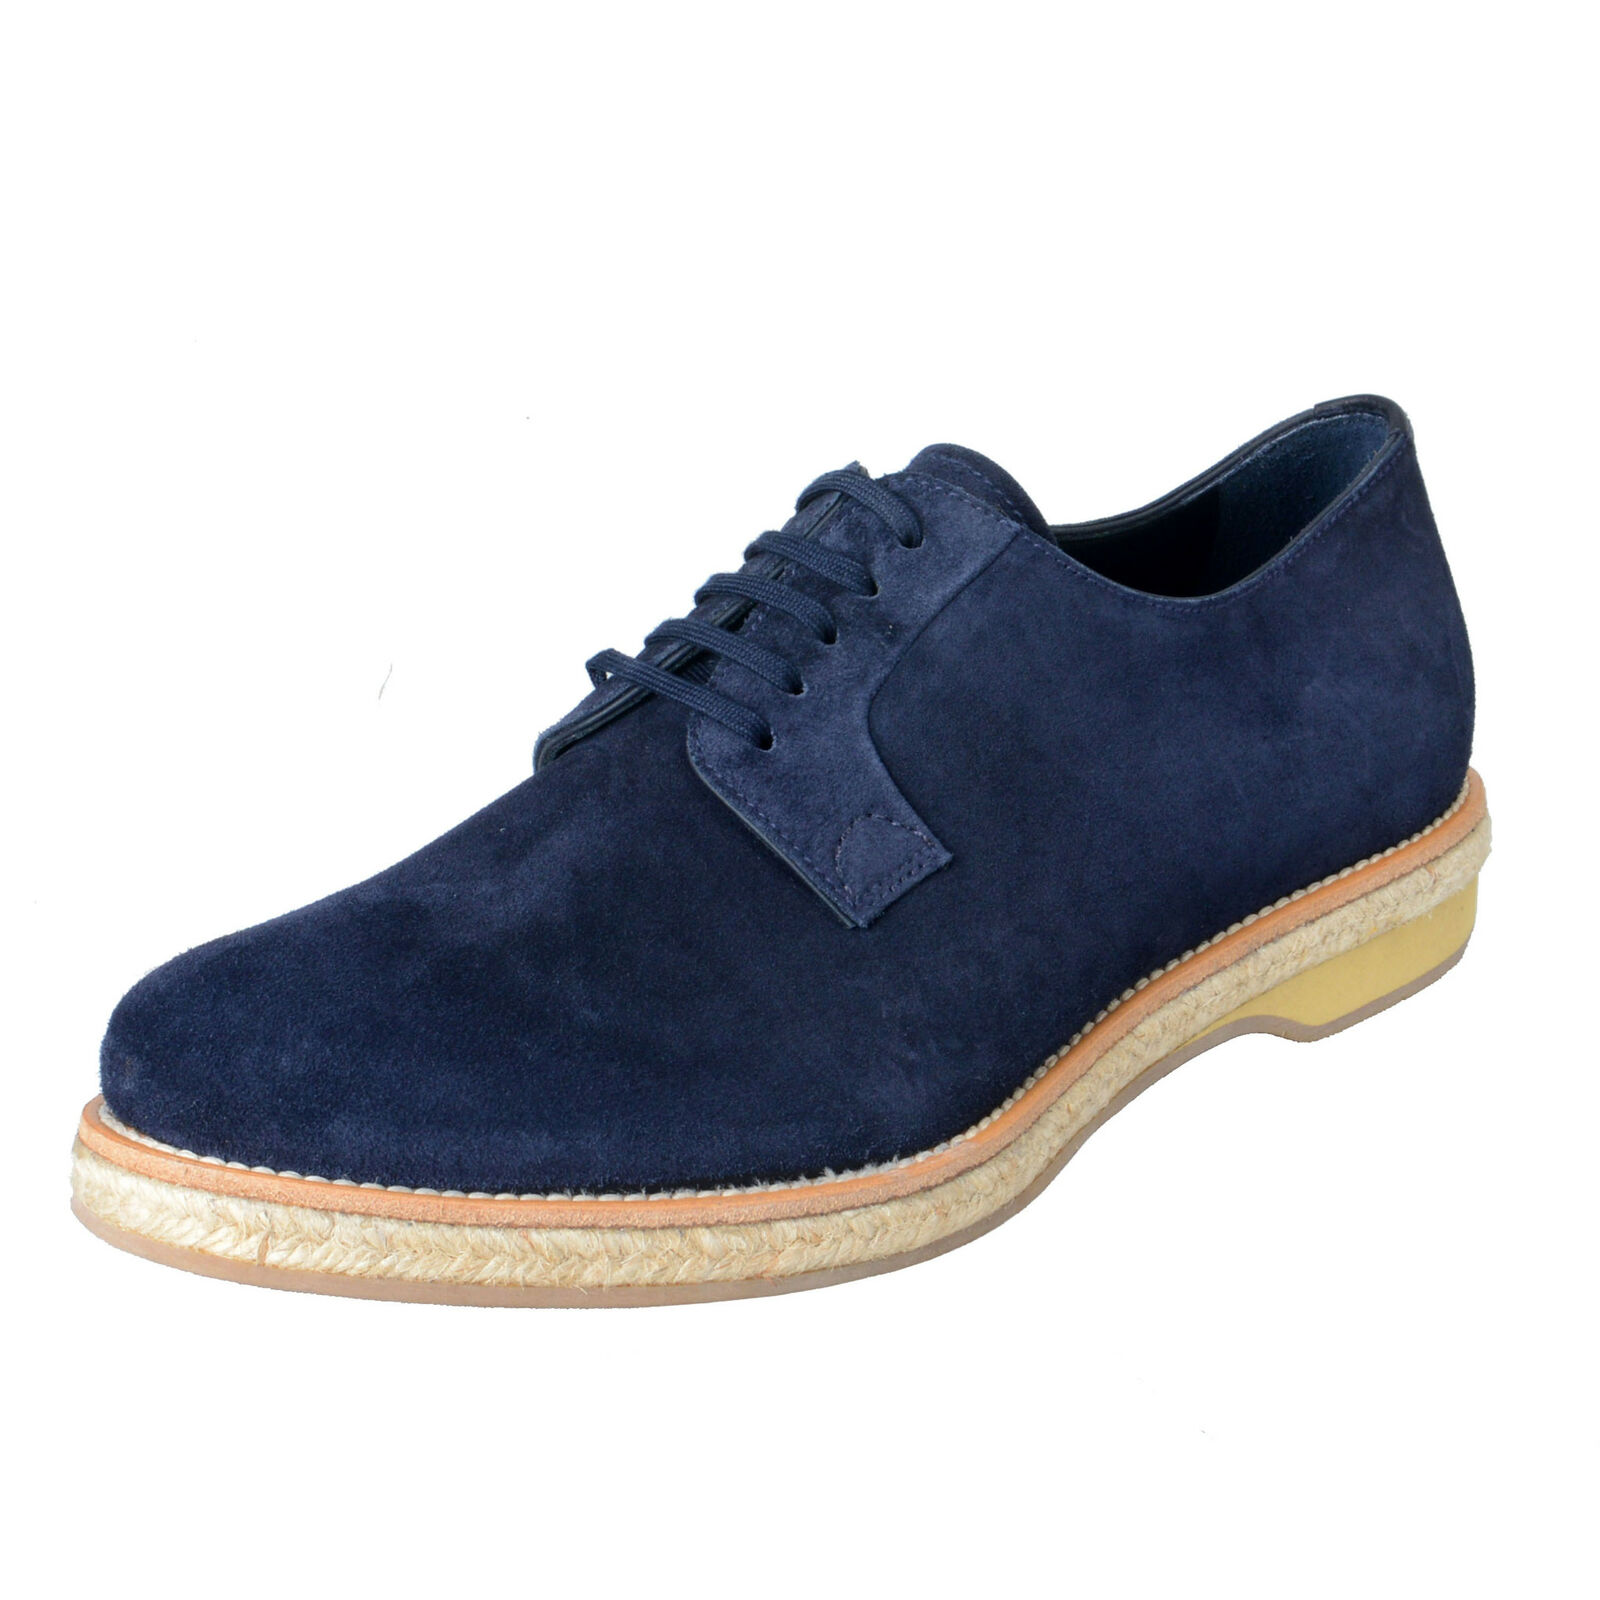 Prada Men's blu Suede Lace Up Oxfords scarpe sz 8 8.5 10 10.5 11 12 13